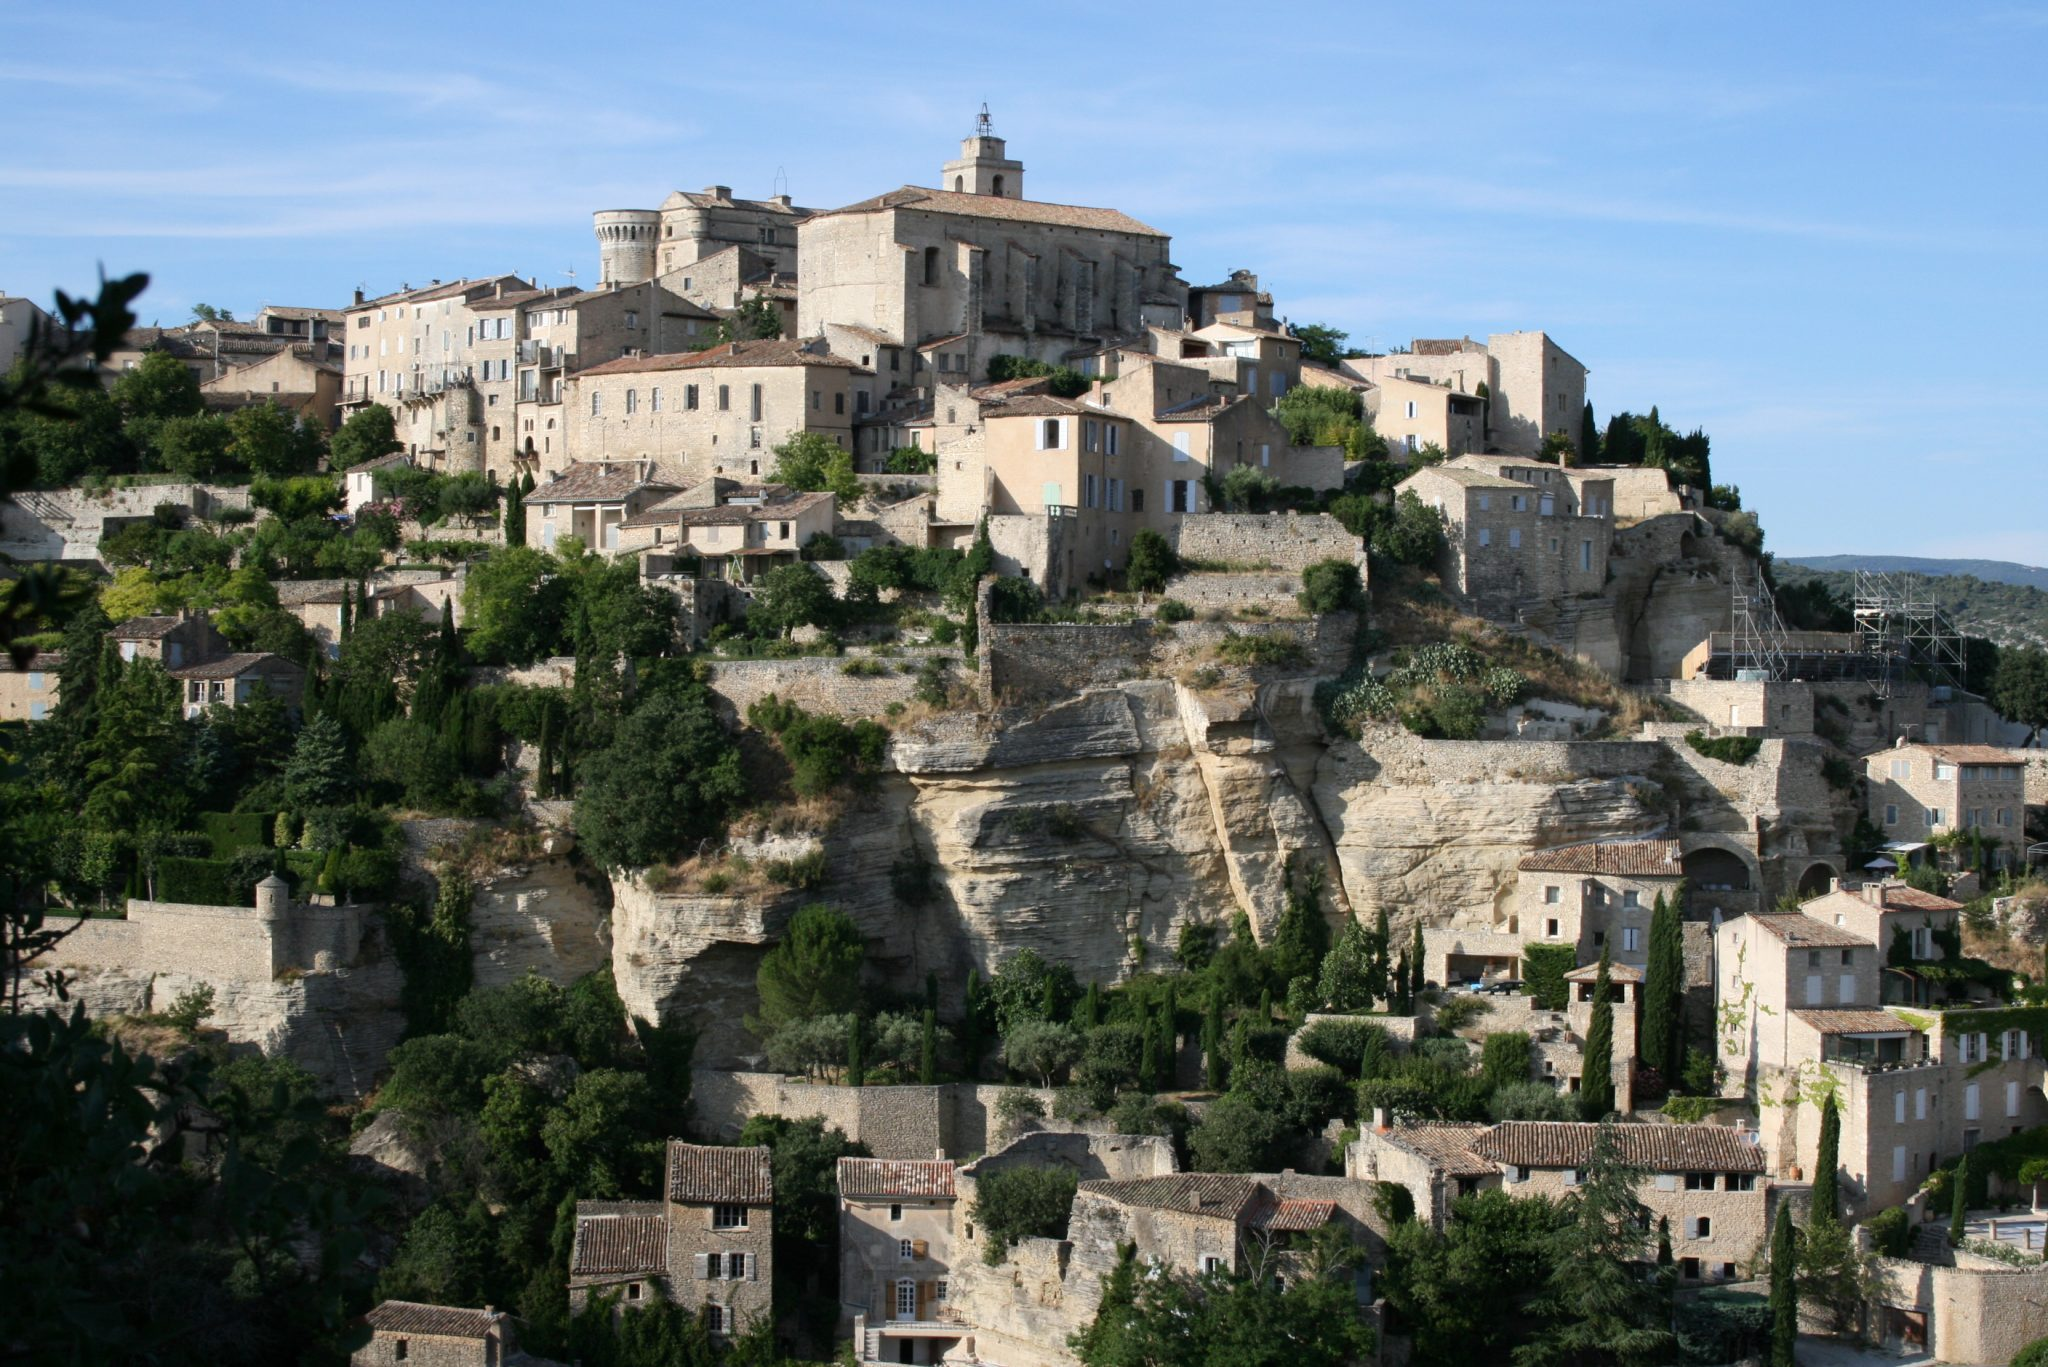 Village of Gordes (20 minute drive)